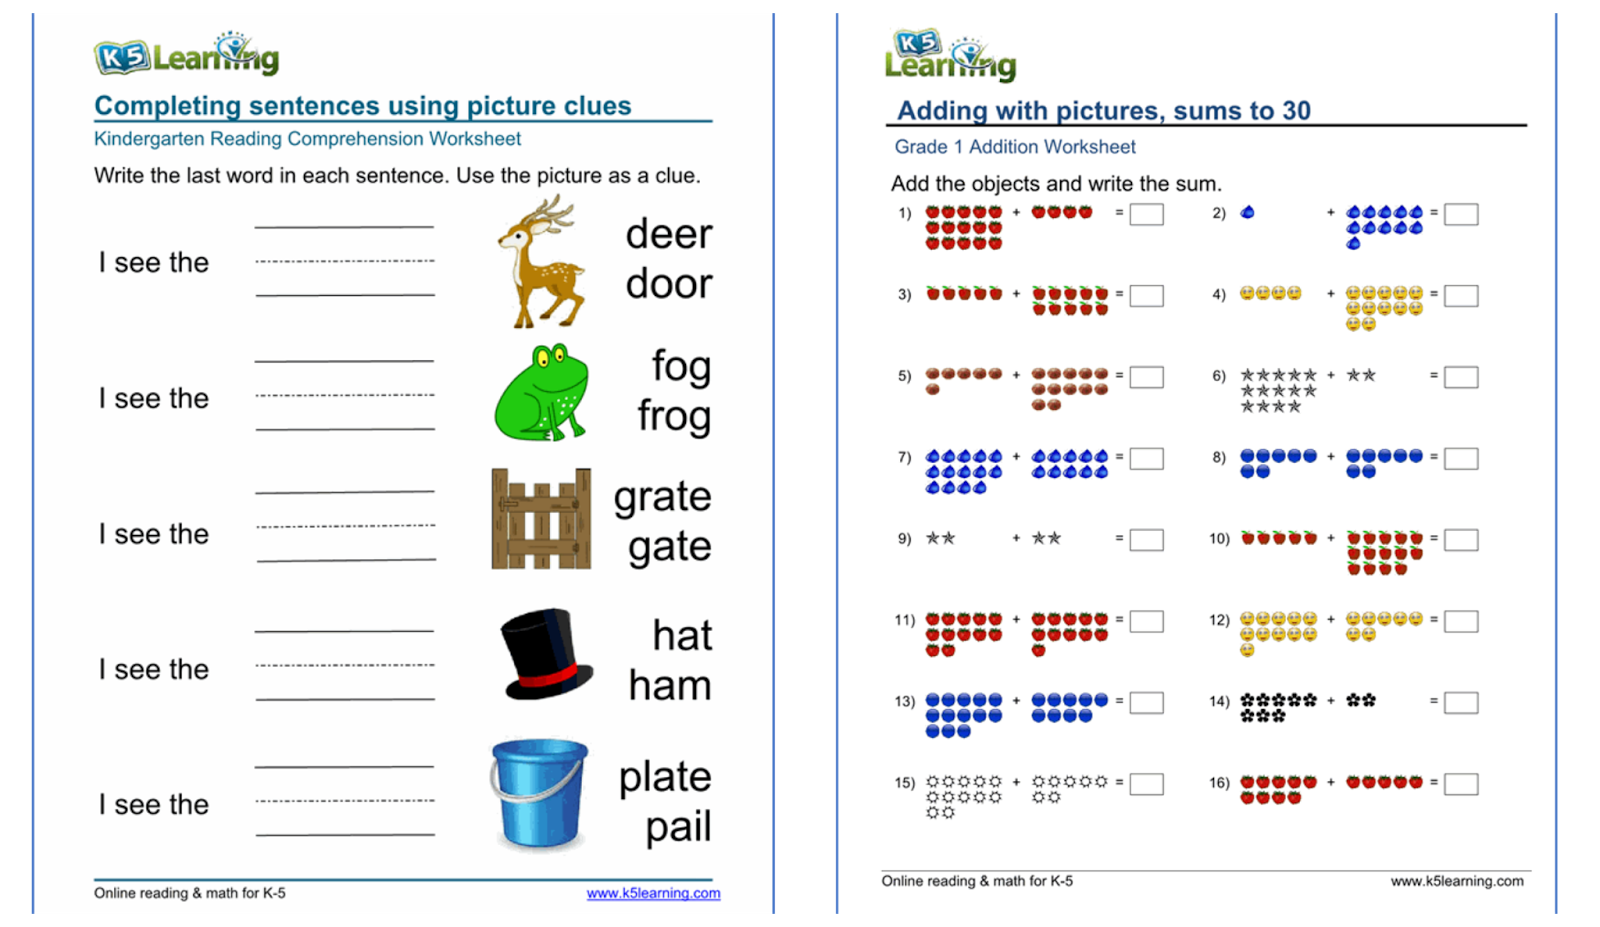 Online Math And Reading Enrichment Program For Kids K5 Learning Review